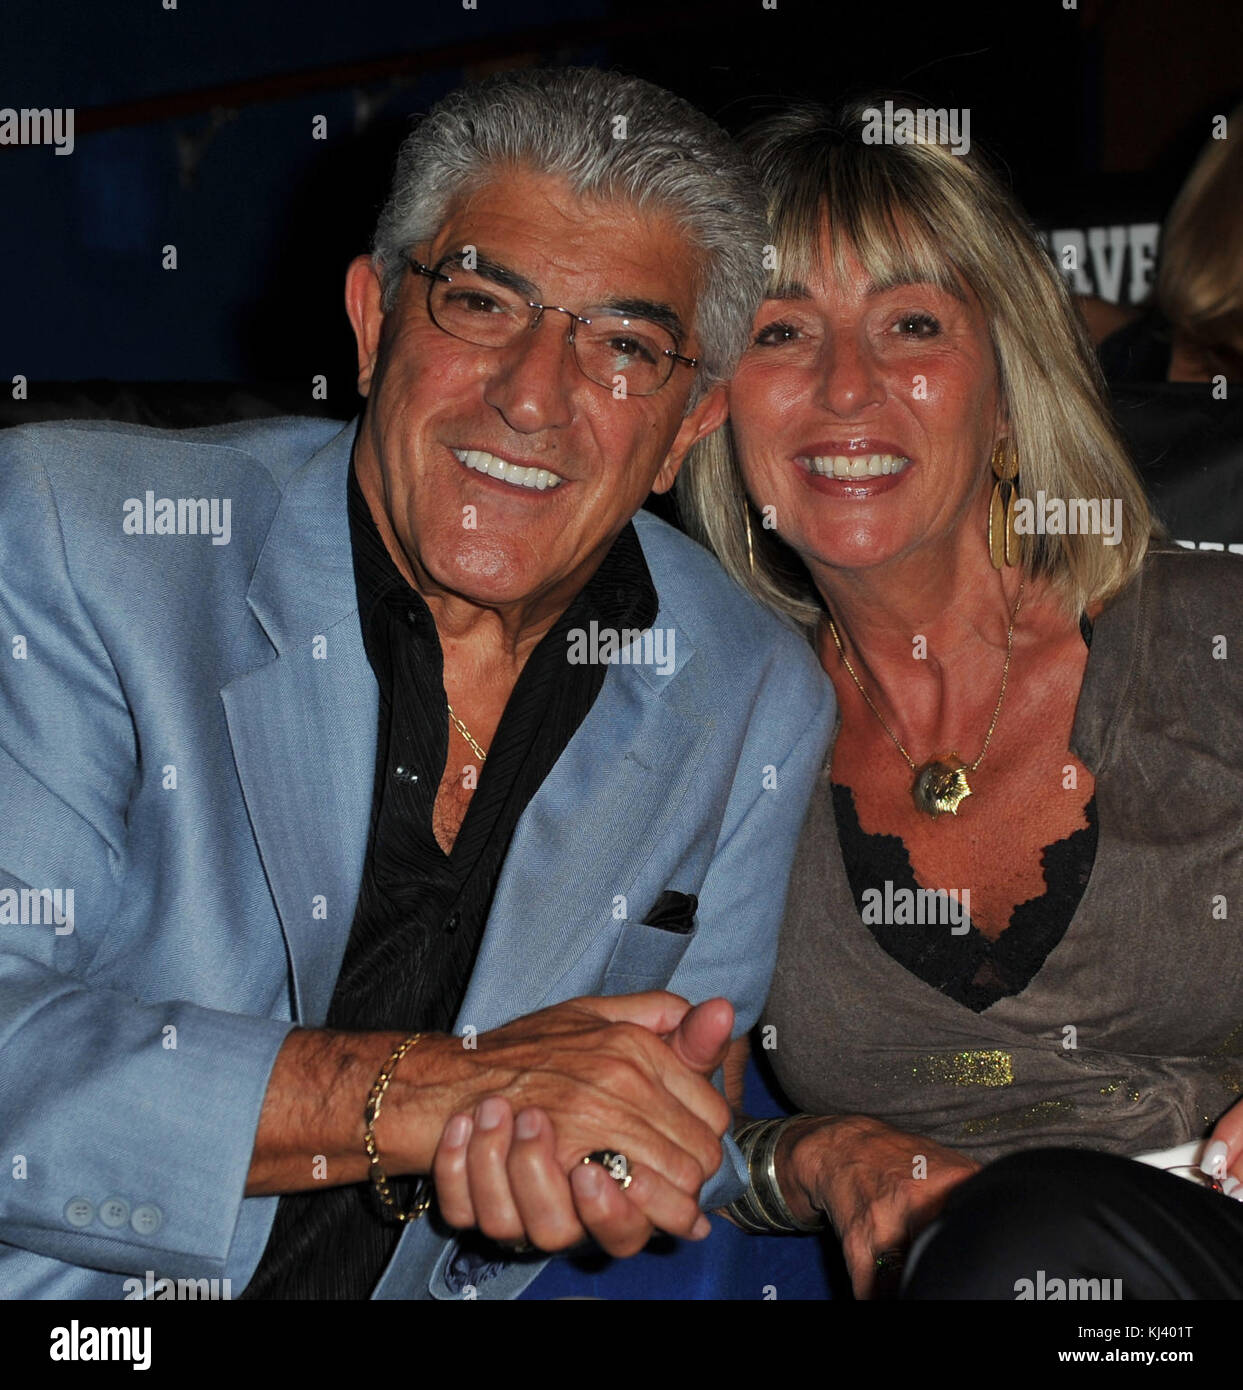 FORT LAUDERDALE, FL - JANUARY 08: Frank Vincent arrives at the screening of Genus On Hold at Cinema Paradiso.  GENIUS - Stock Image